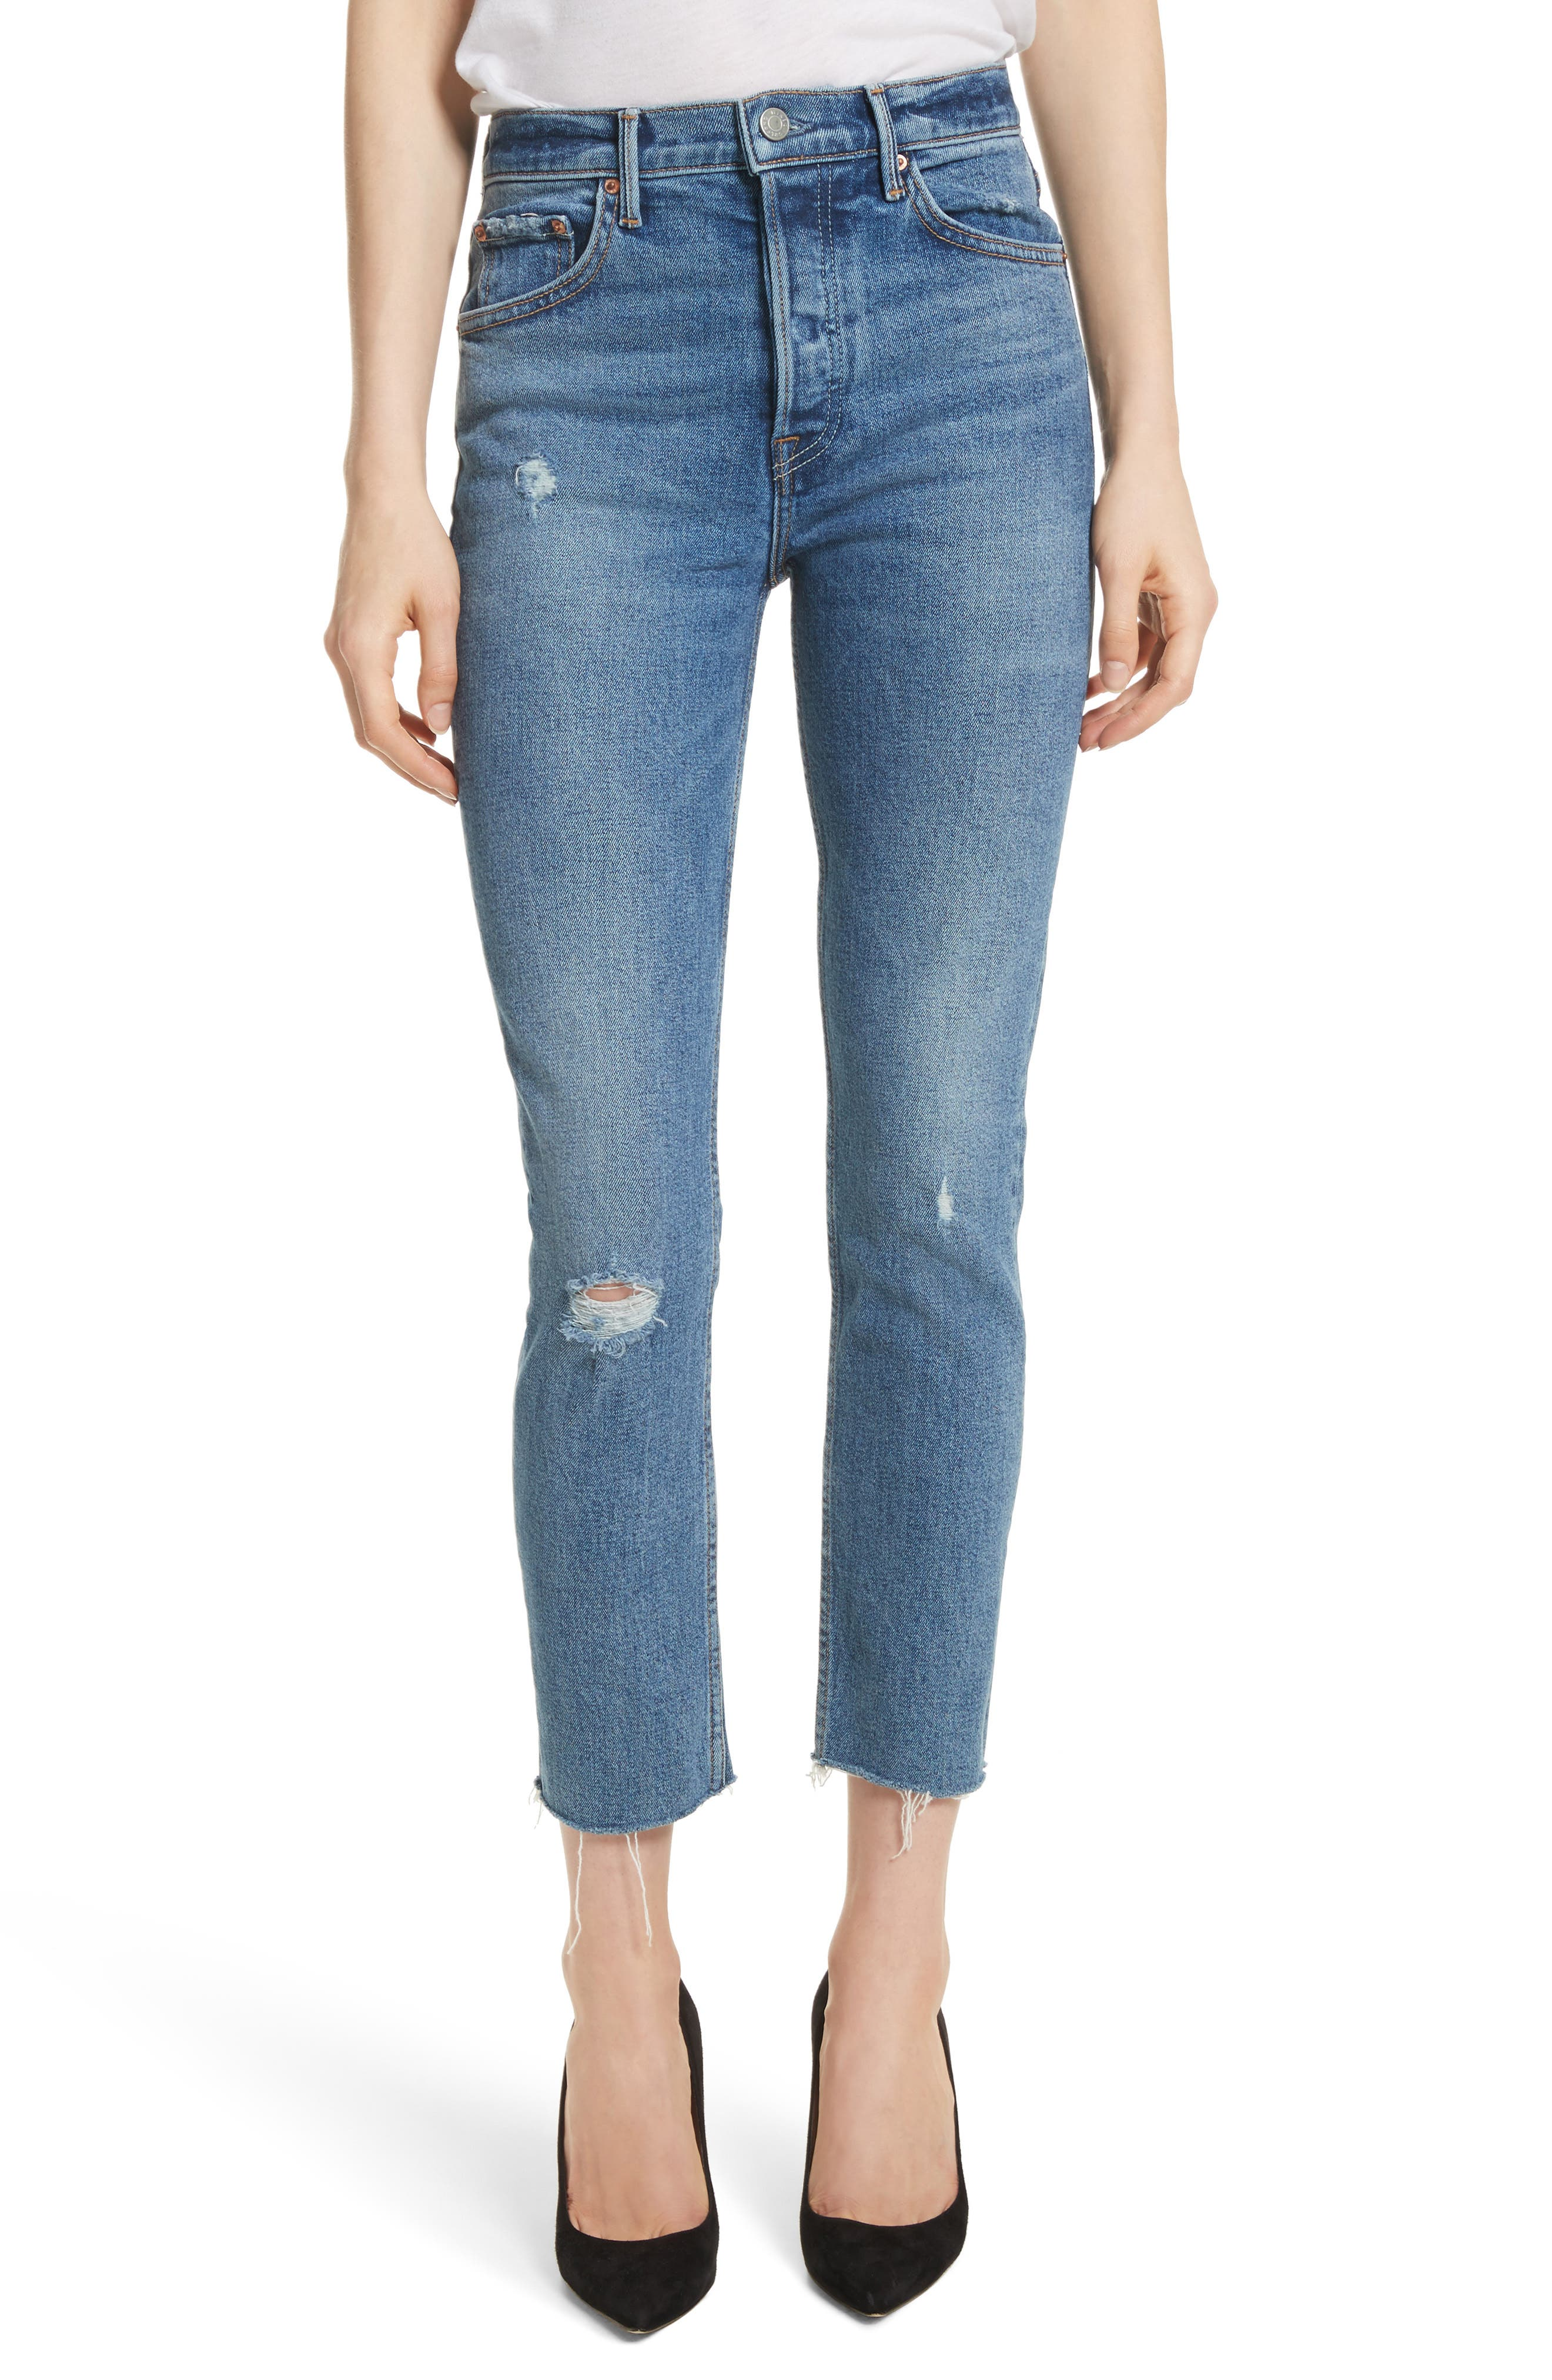 GRLFRND Karolina High Waist Skinny Jeans, Main, color, SIXPENCE